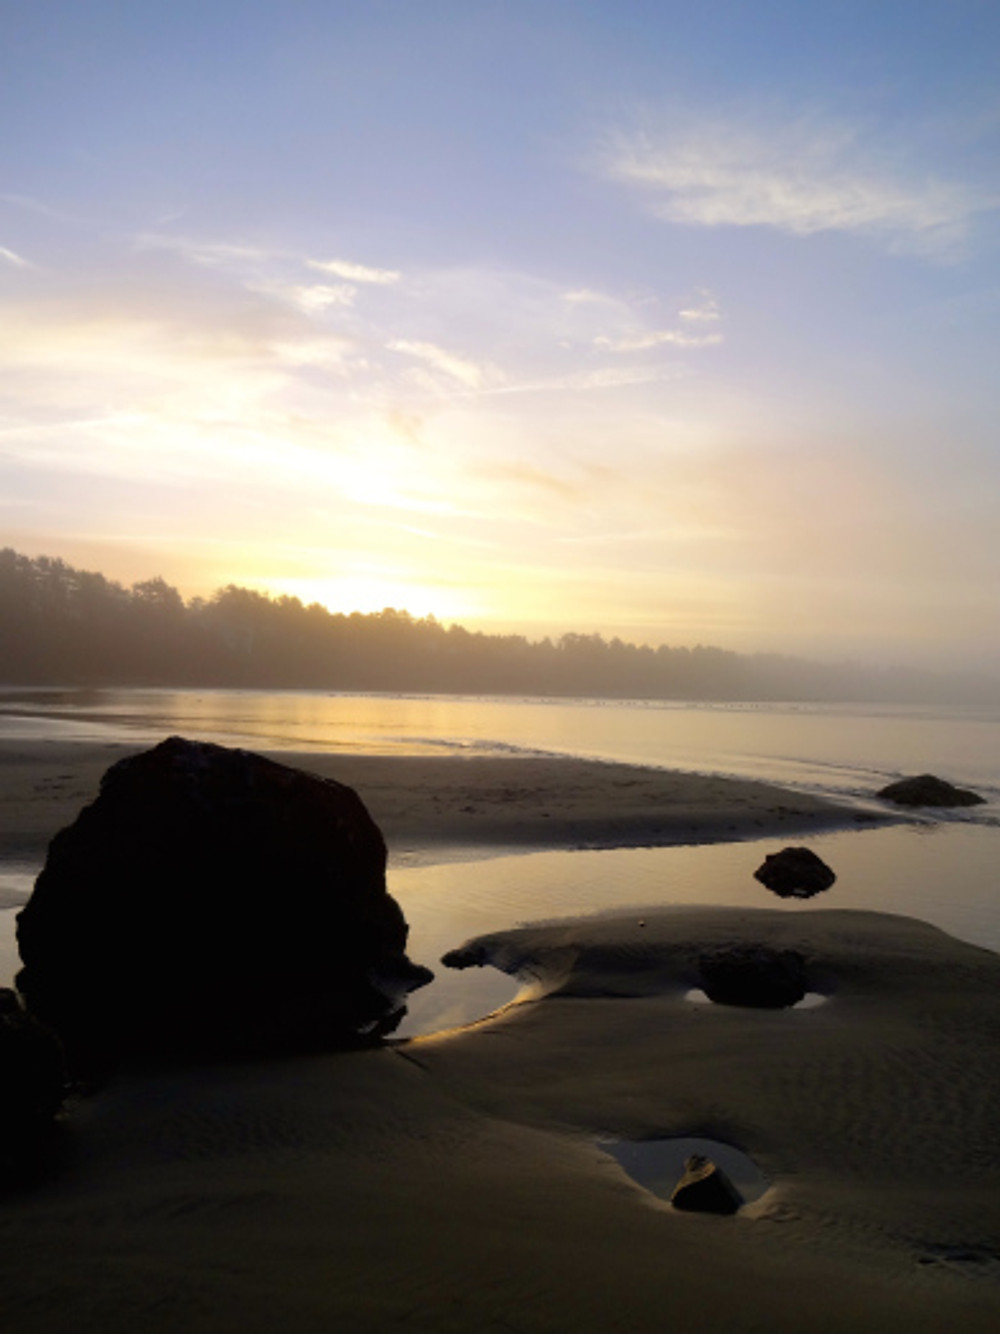 Our first morning out on the beach with lots of fog...we were in heaven!